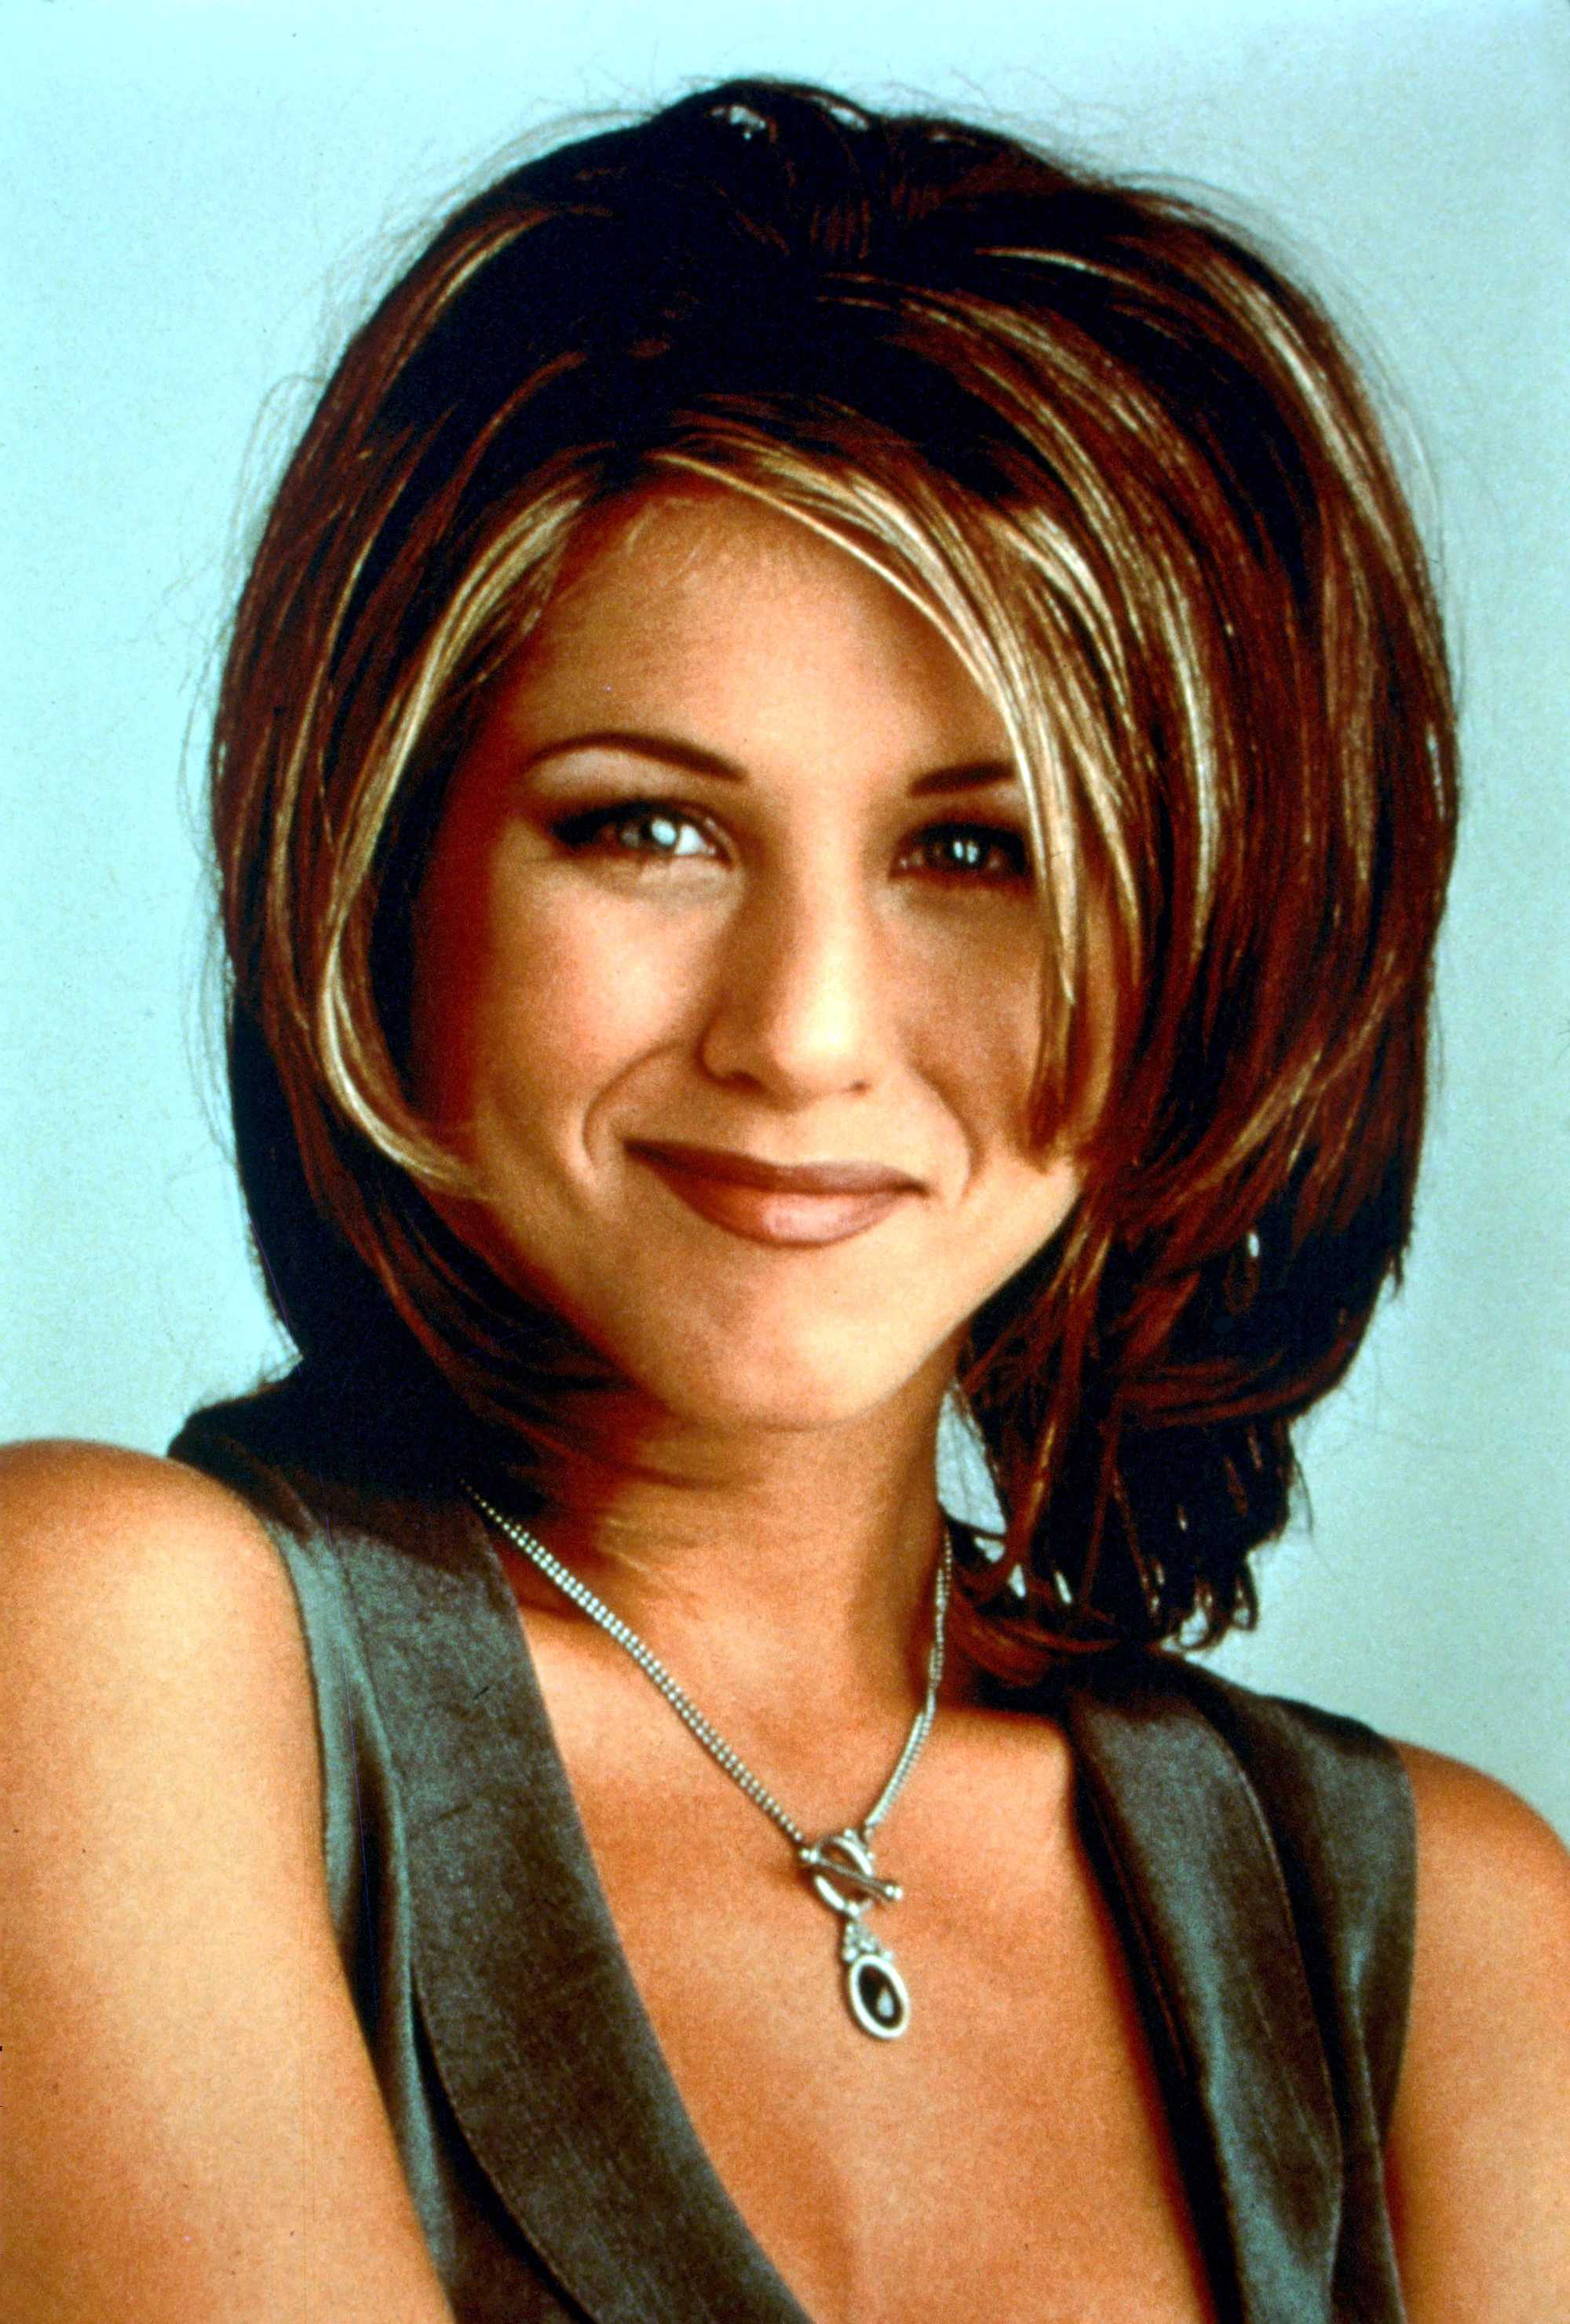 90s hairstyles: Jennifer Aniston with shoulder length highlighted red brown hair in the iconic rachel haircut